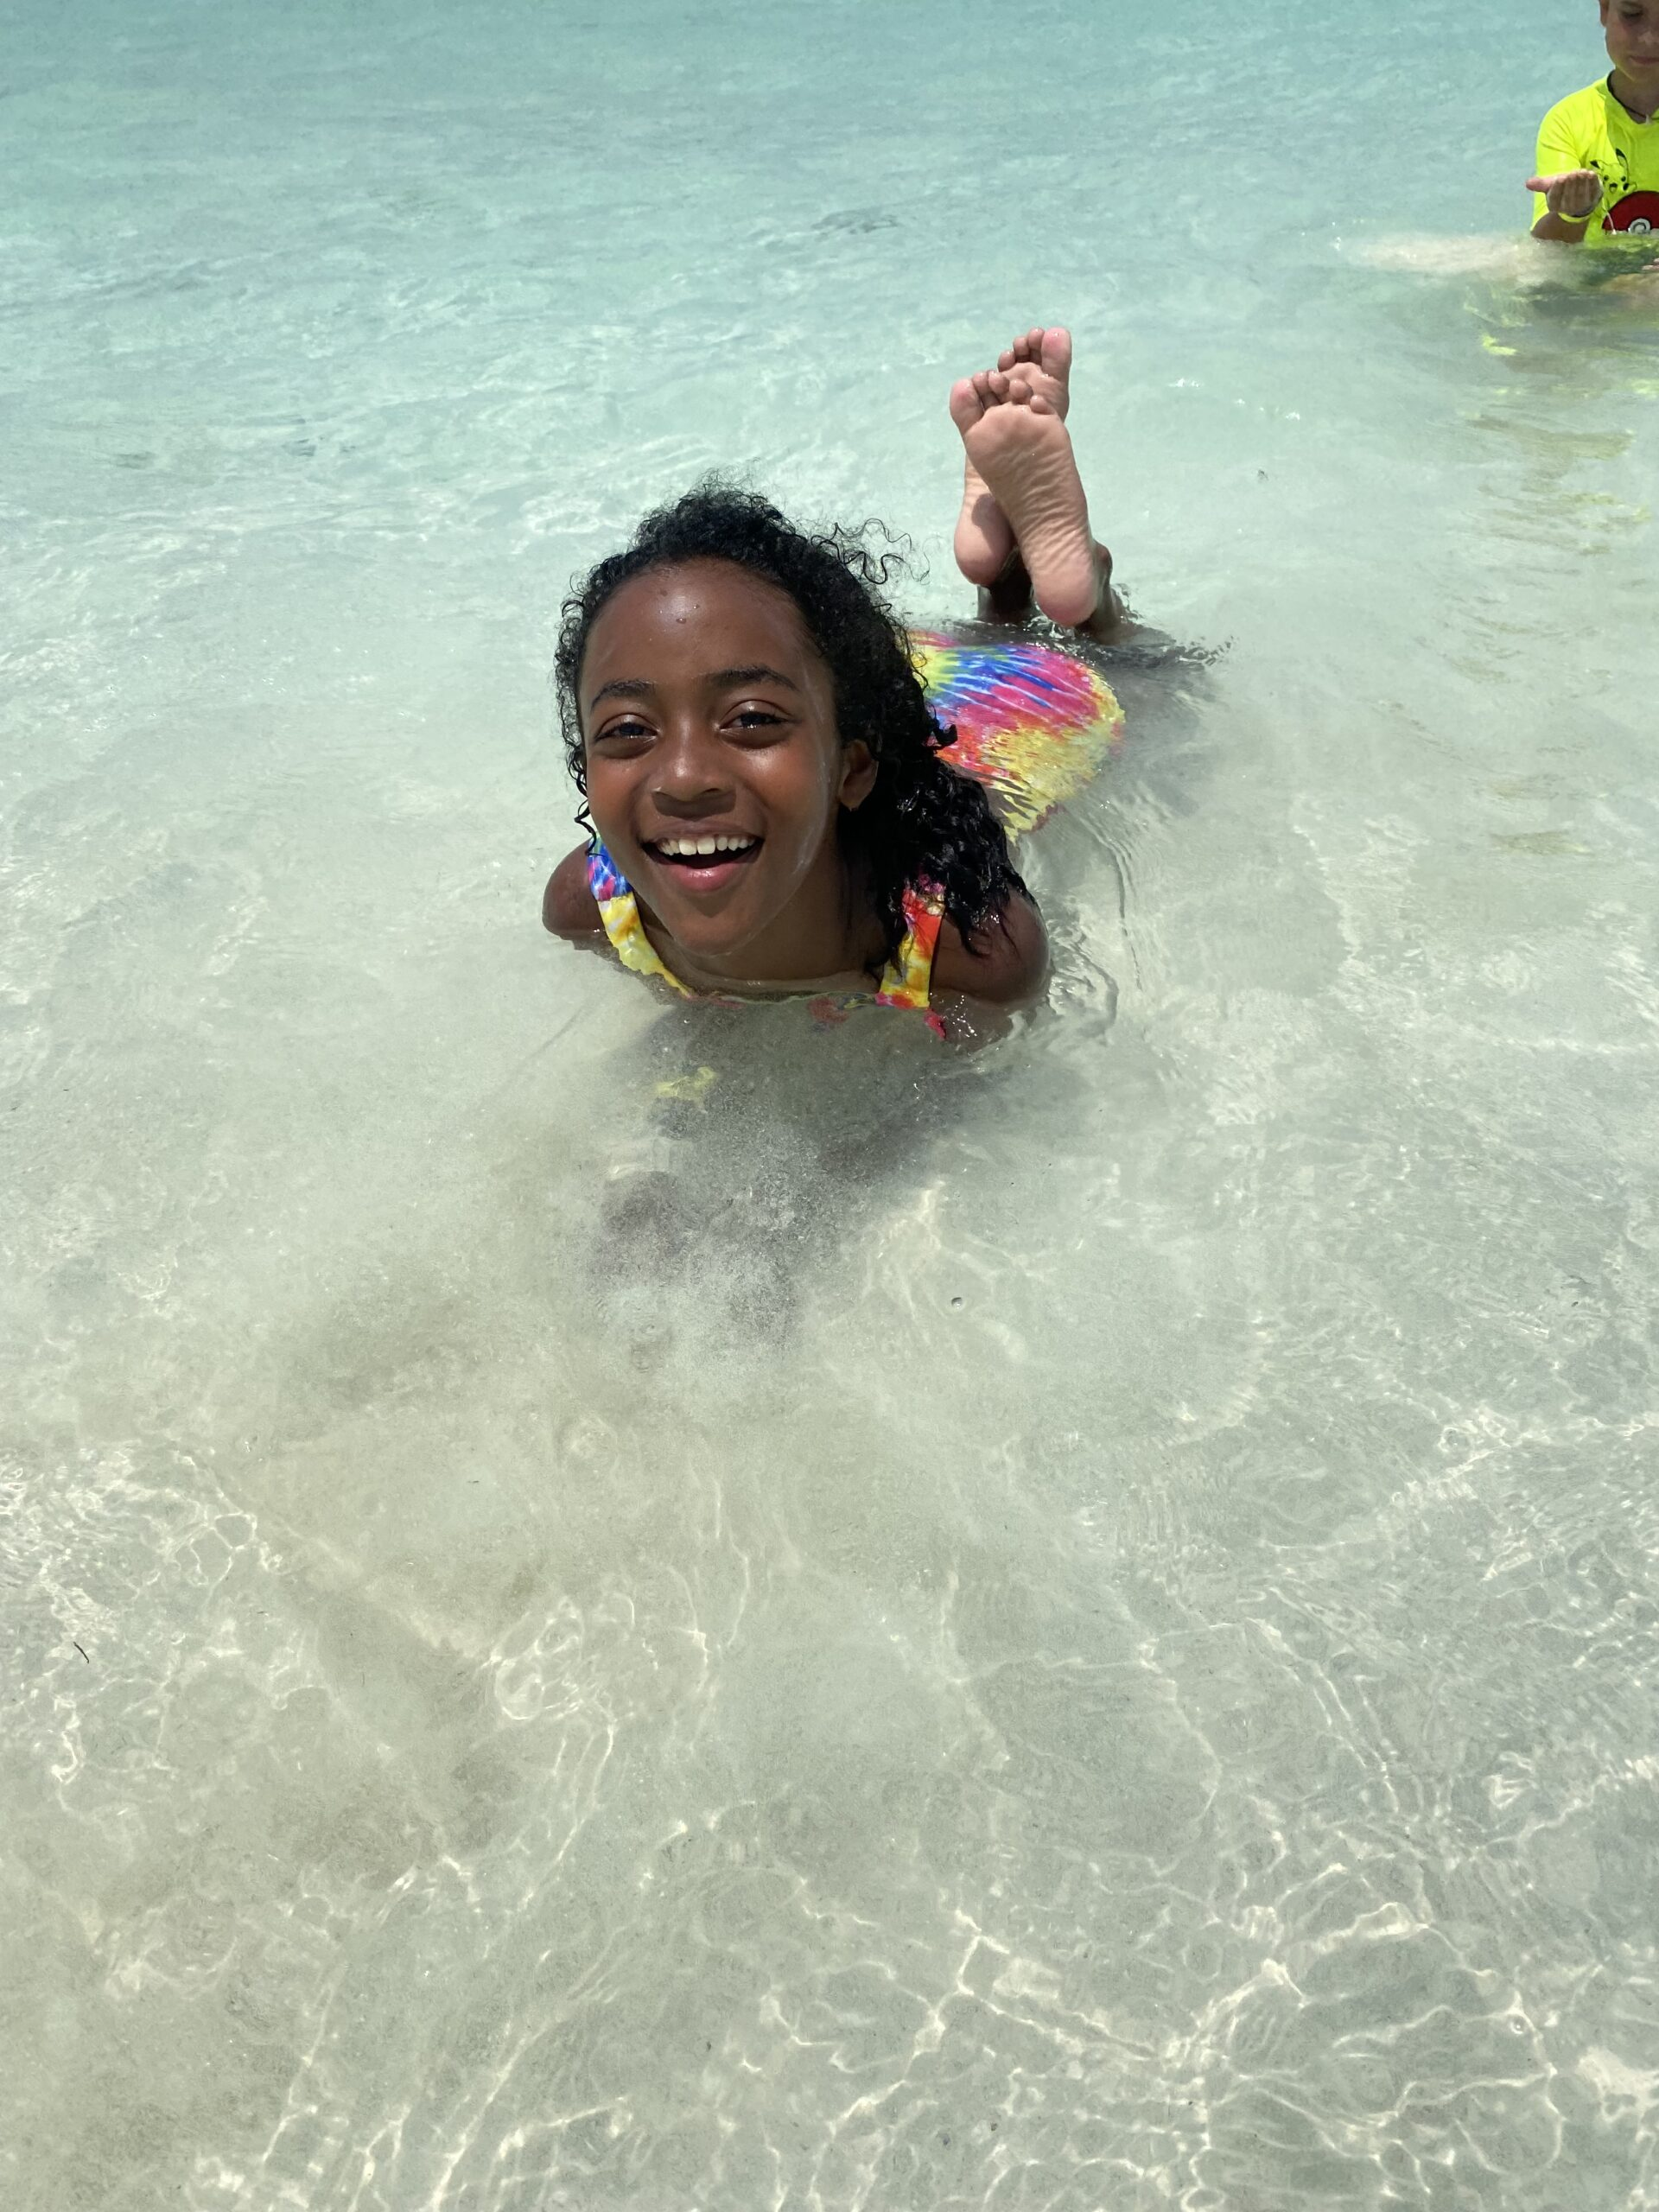 isla mujeres clear waters